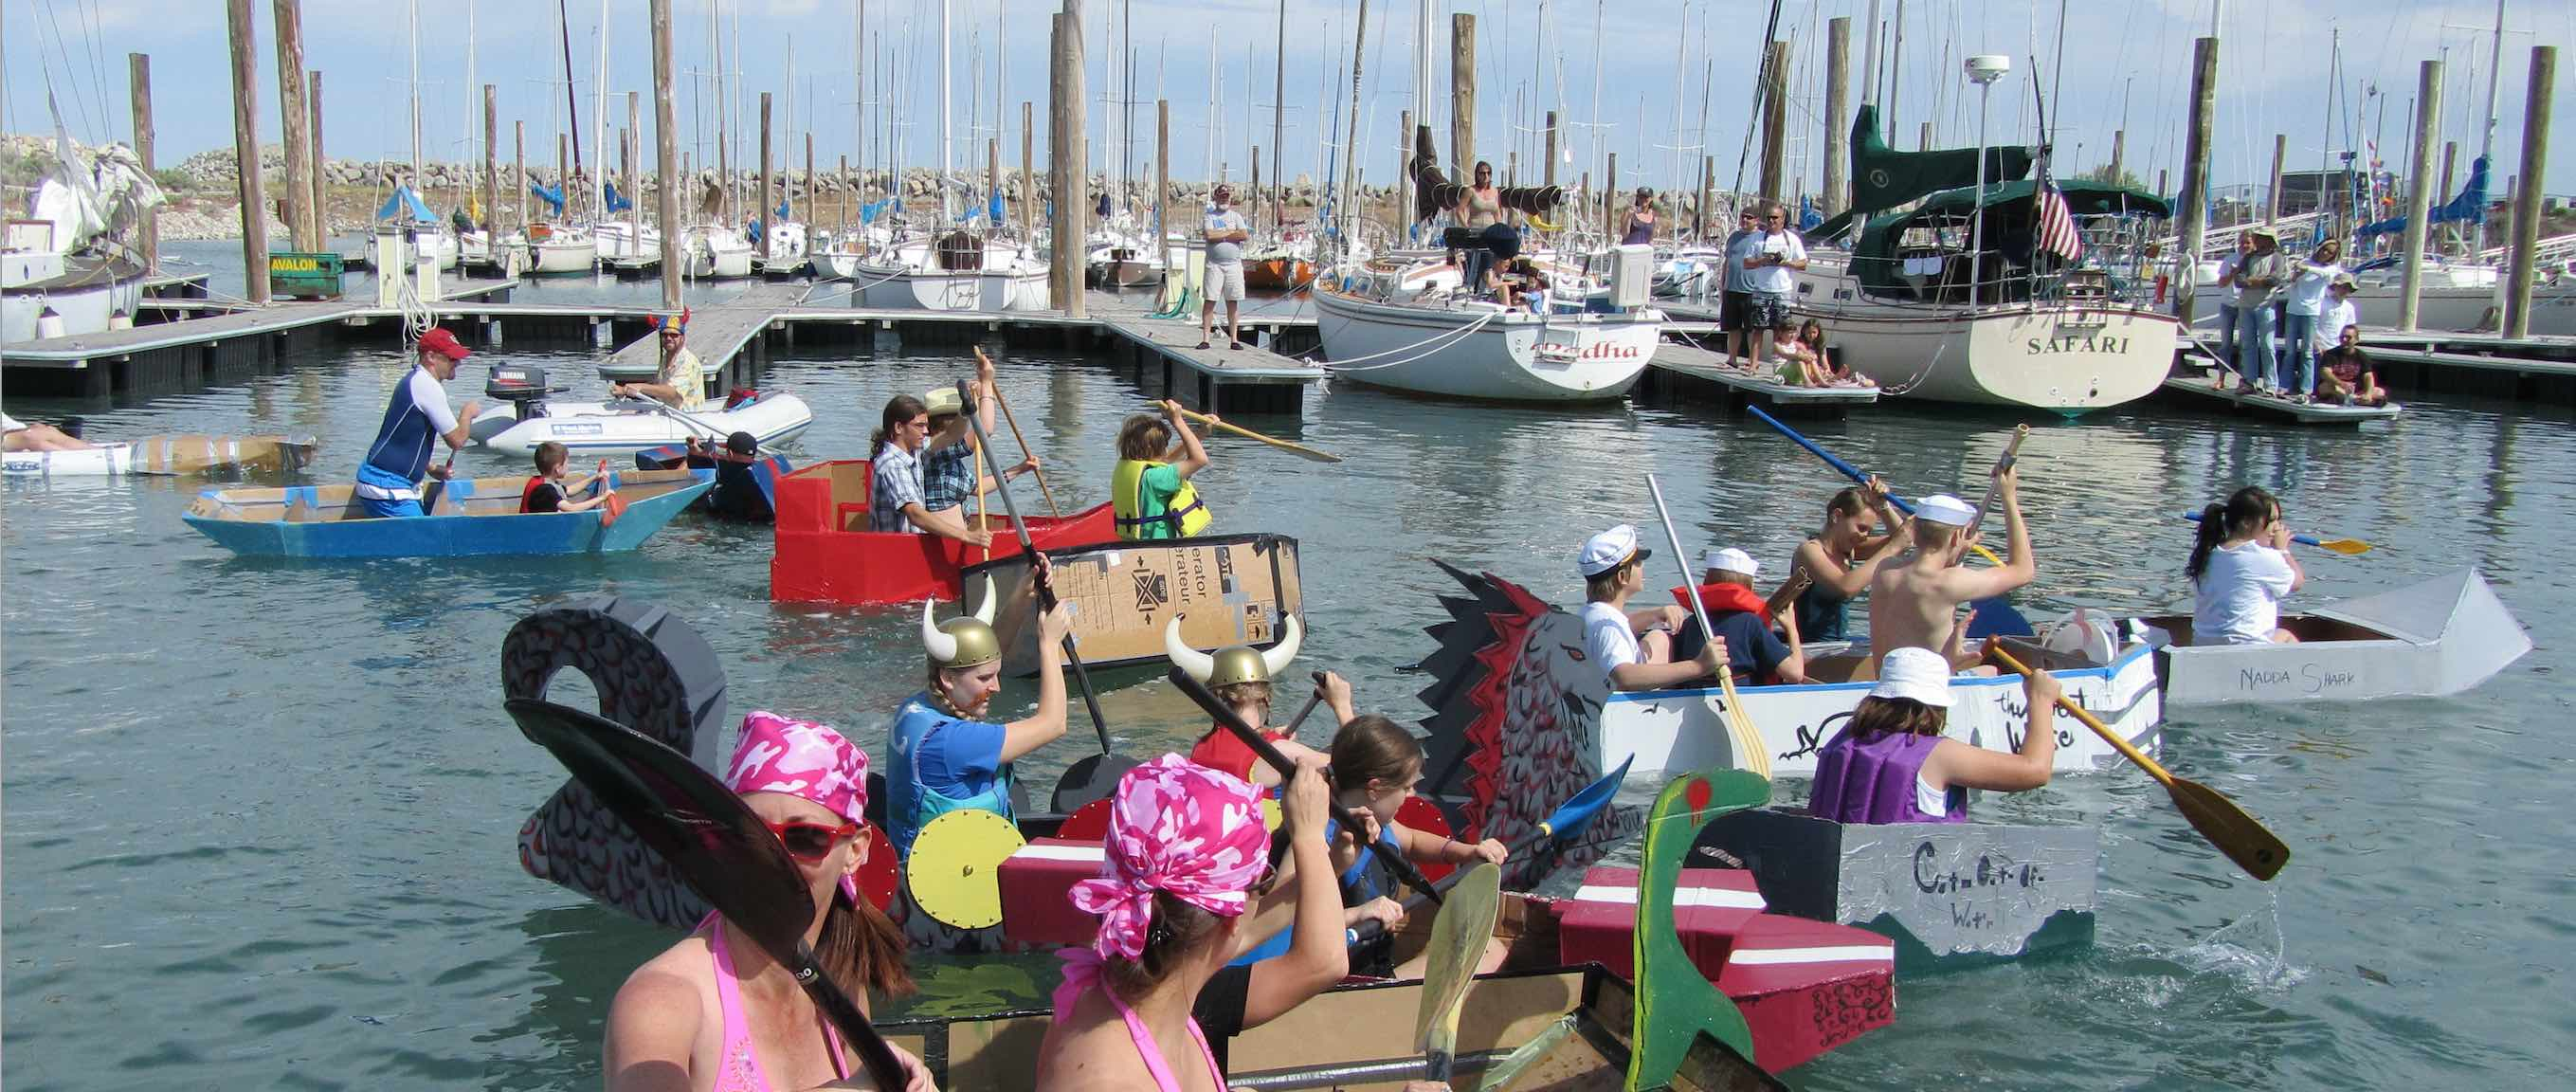 Sail Fest 2017!!! Get Your Cardboard Boat Ready!